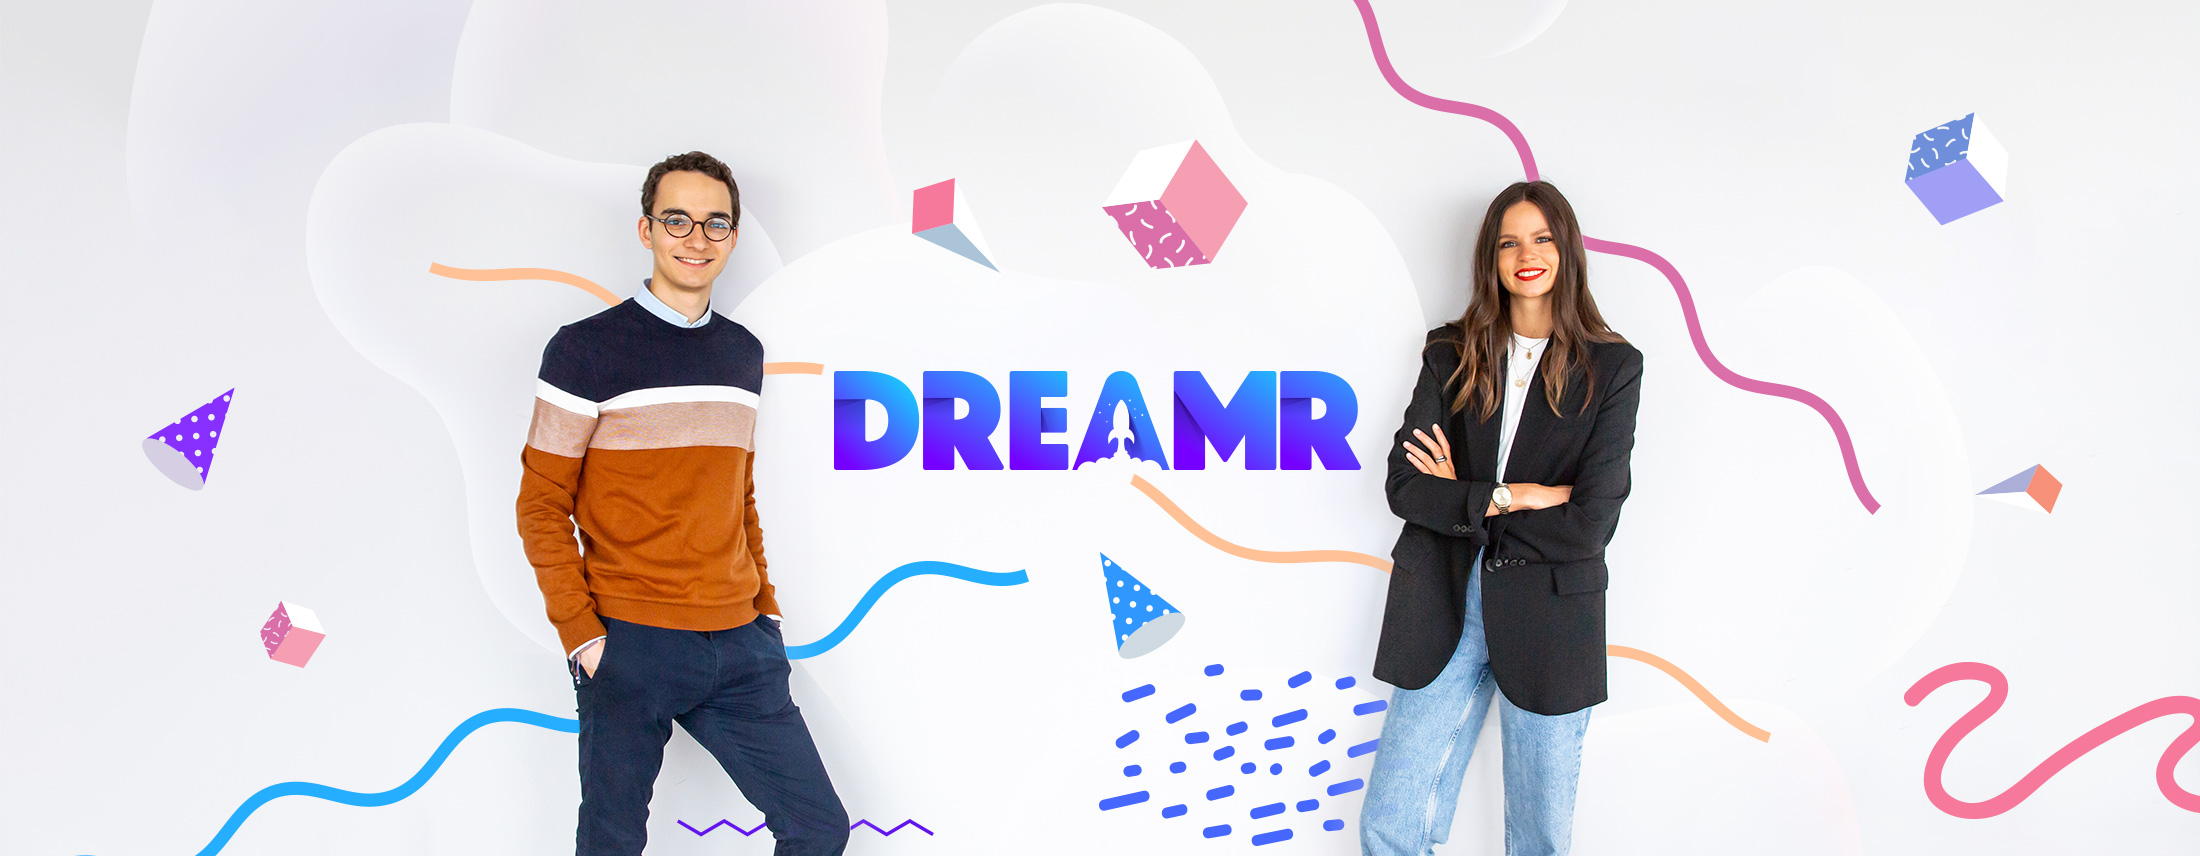 DREAMR, le MR lance son propre média